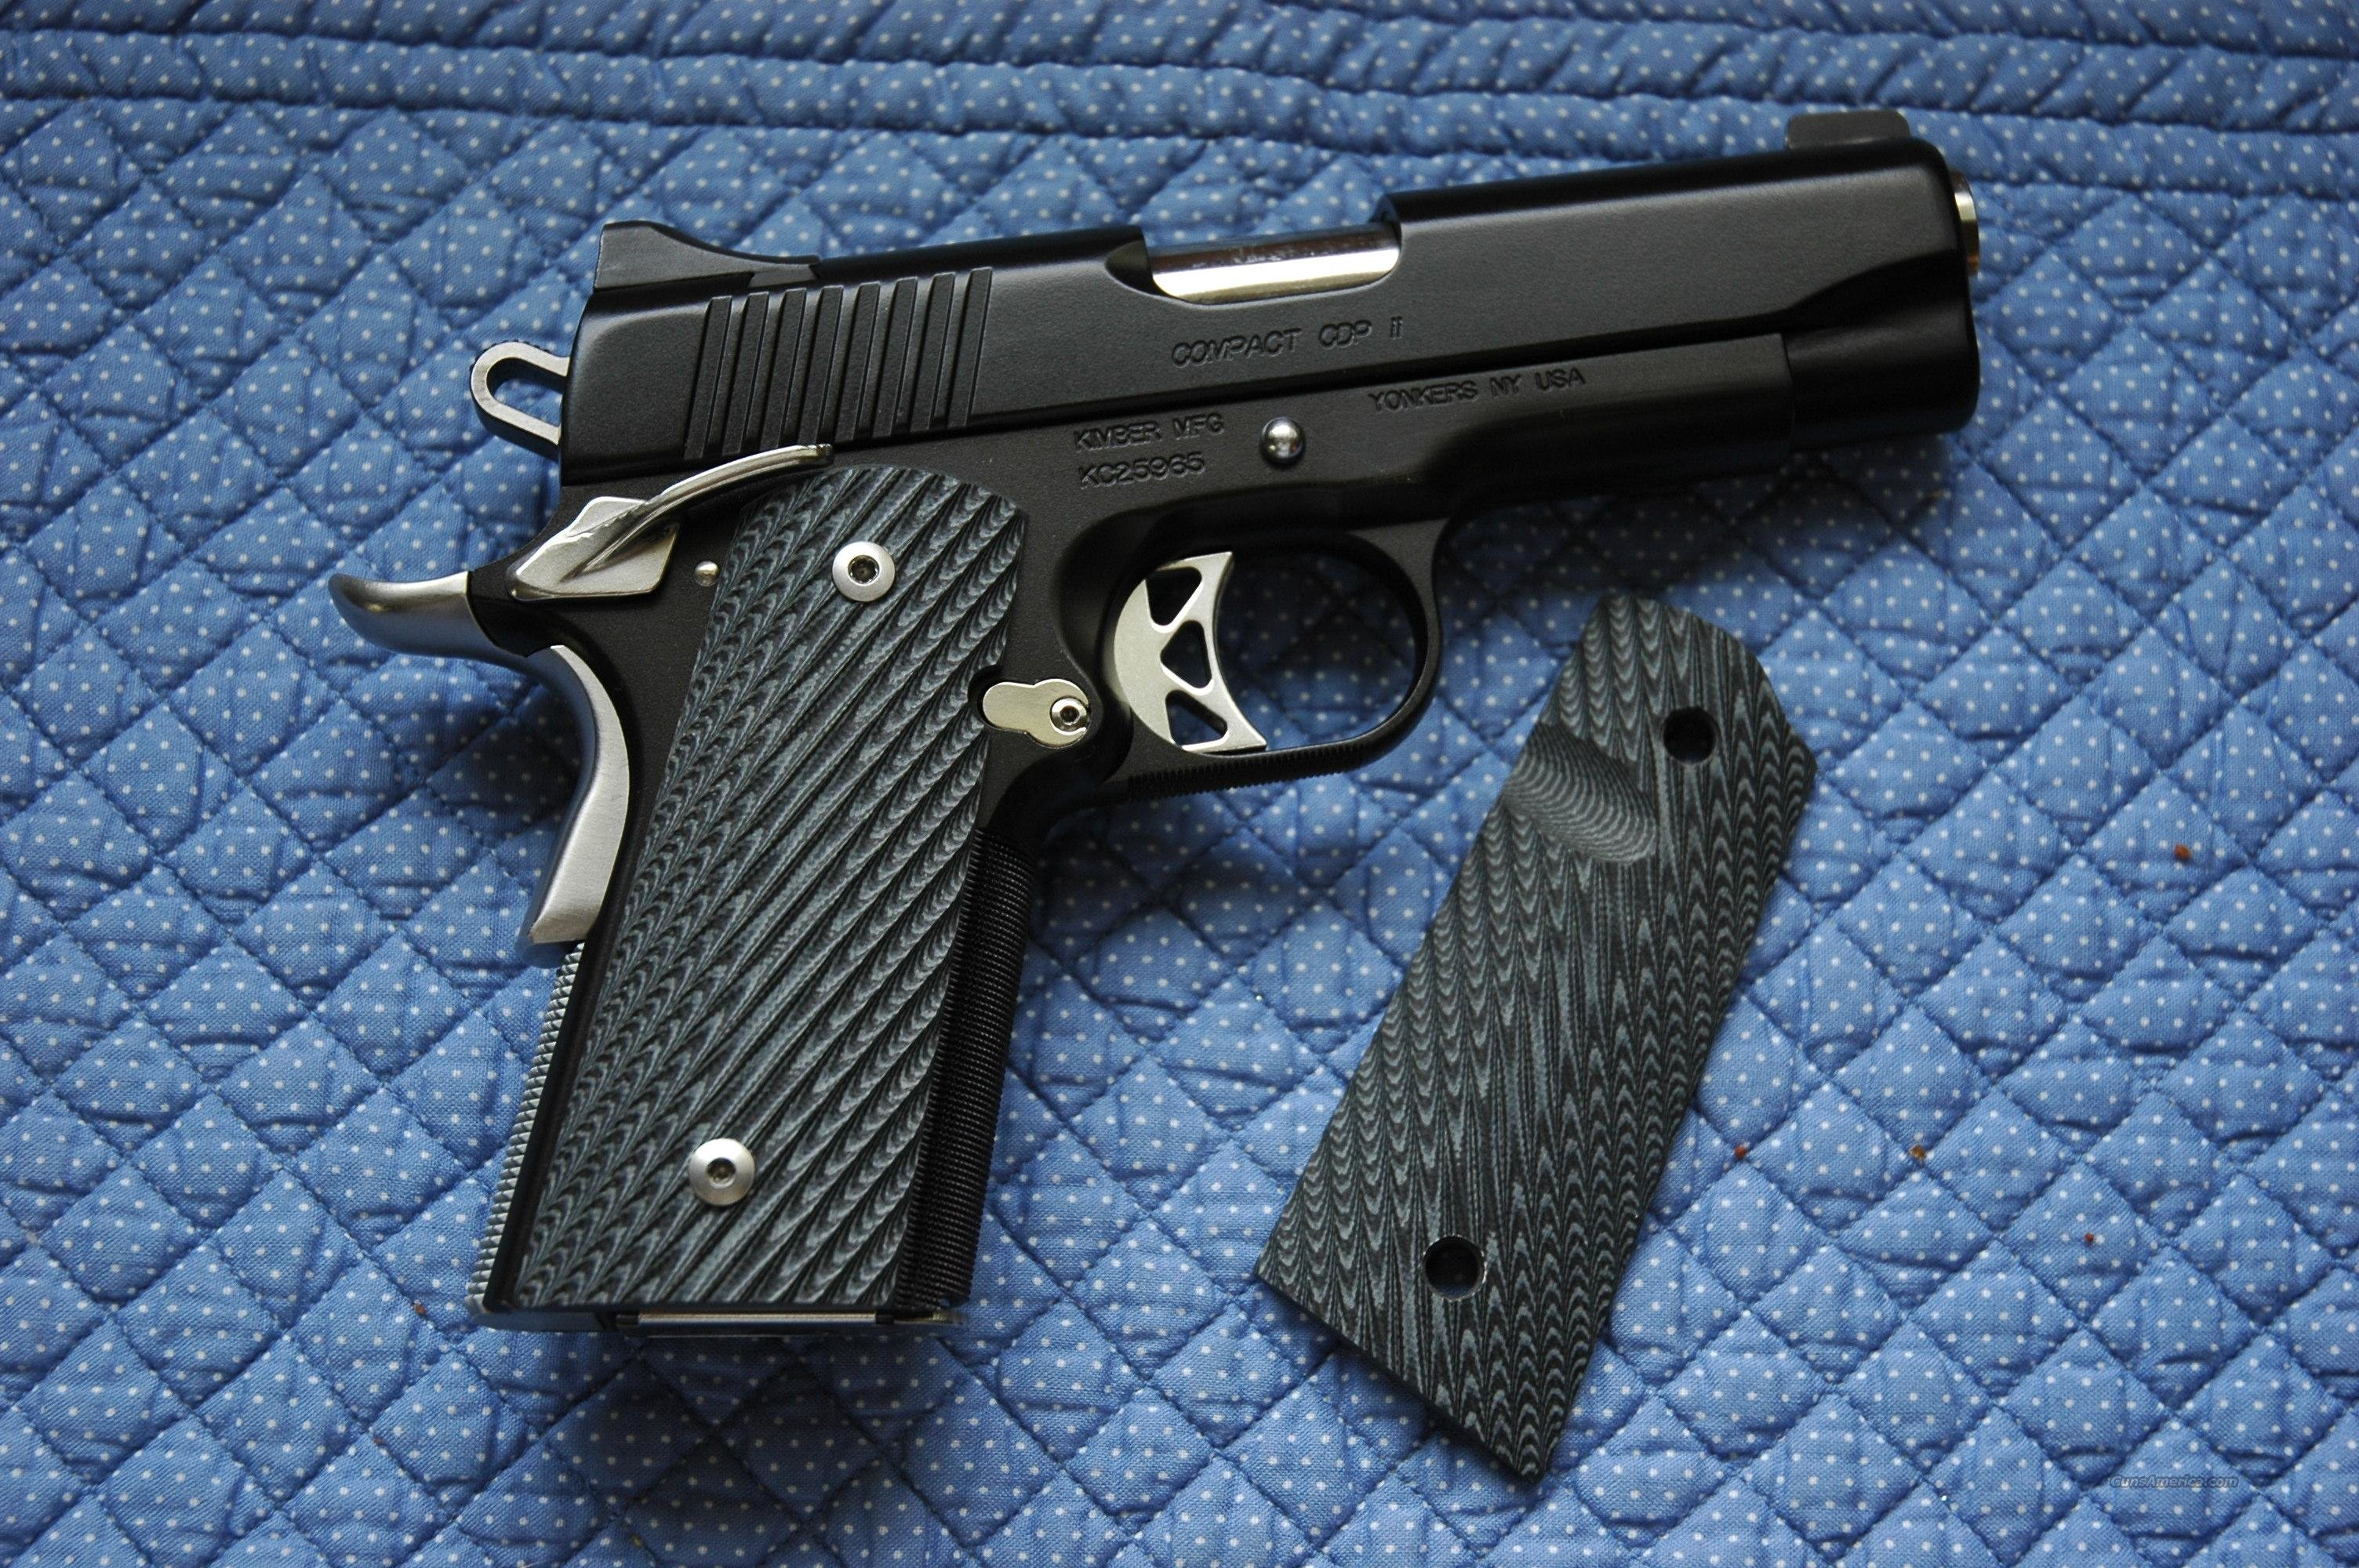 Mil-Tac G10 blackgraygrips 1911 compact  Non-Guns > Gunstocks, Grips & Wood